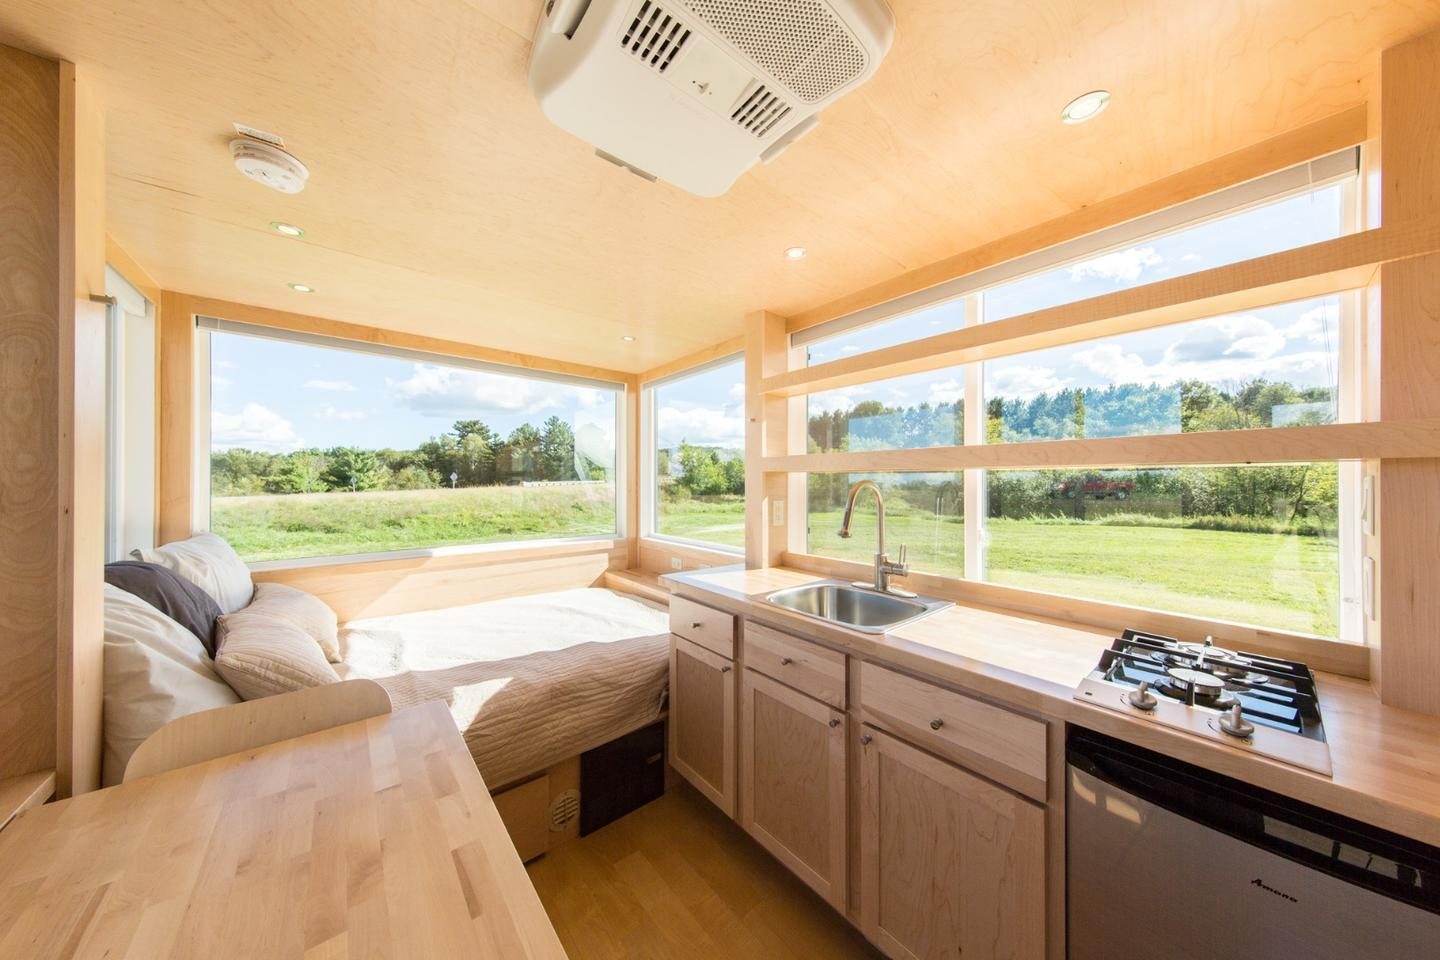 The VistaGo has just 136 sq ft (12.6 sq m) of floorspace